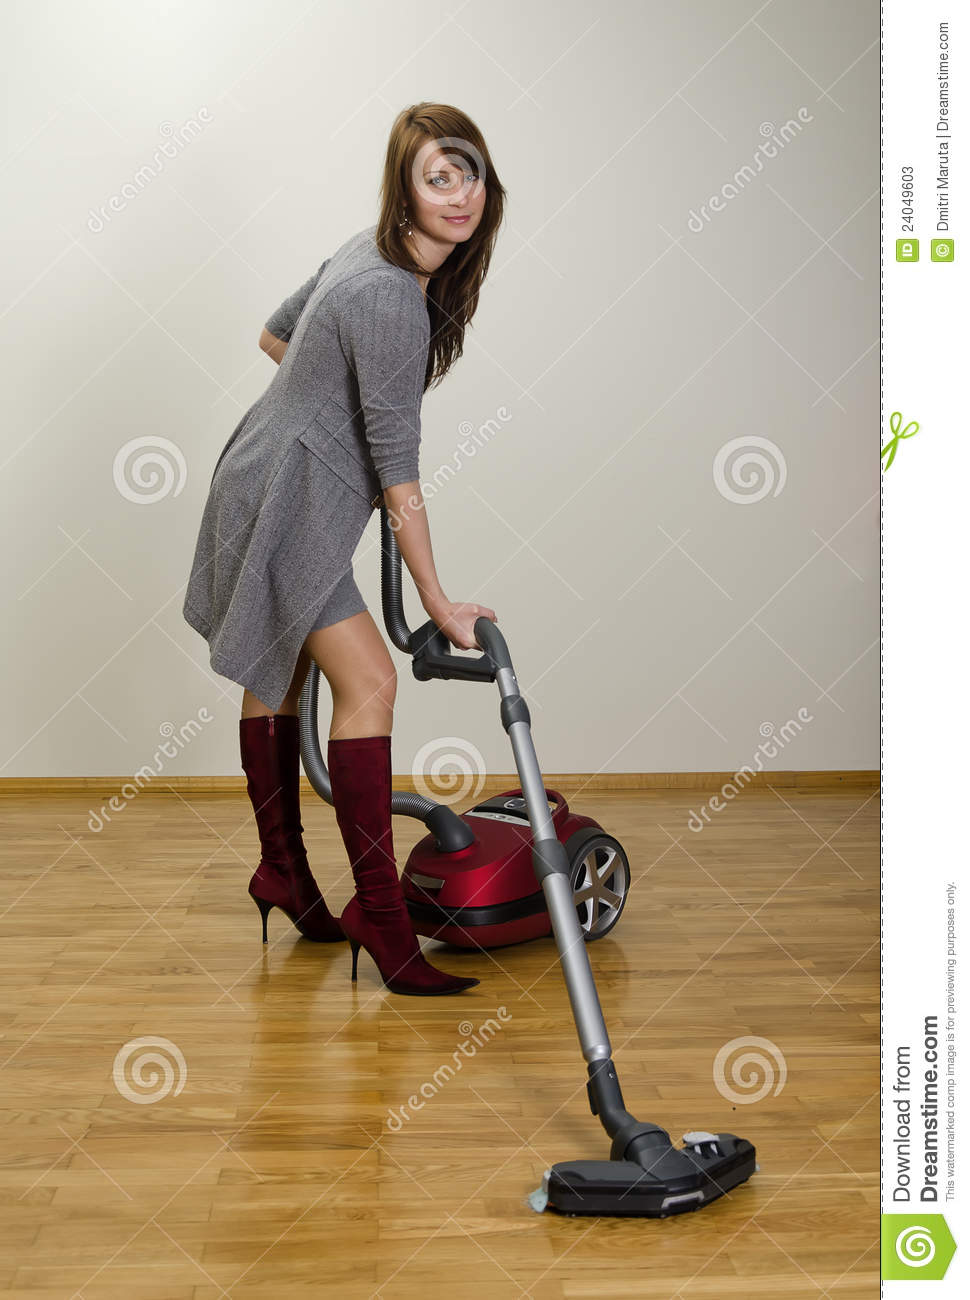 young girl cleaning house